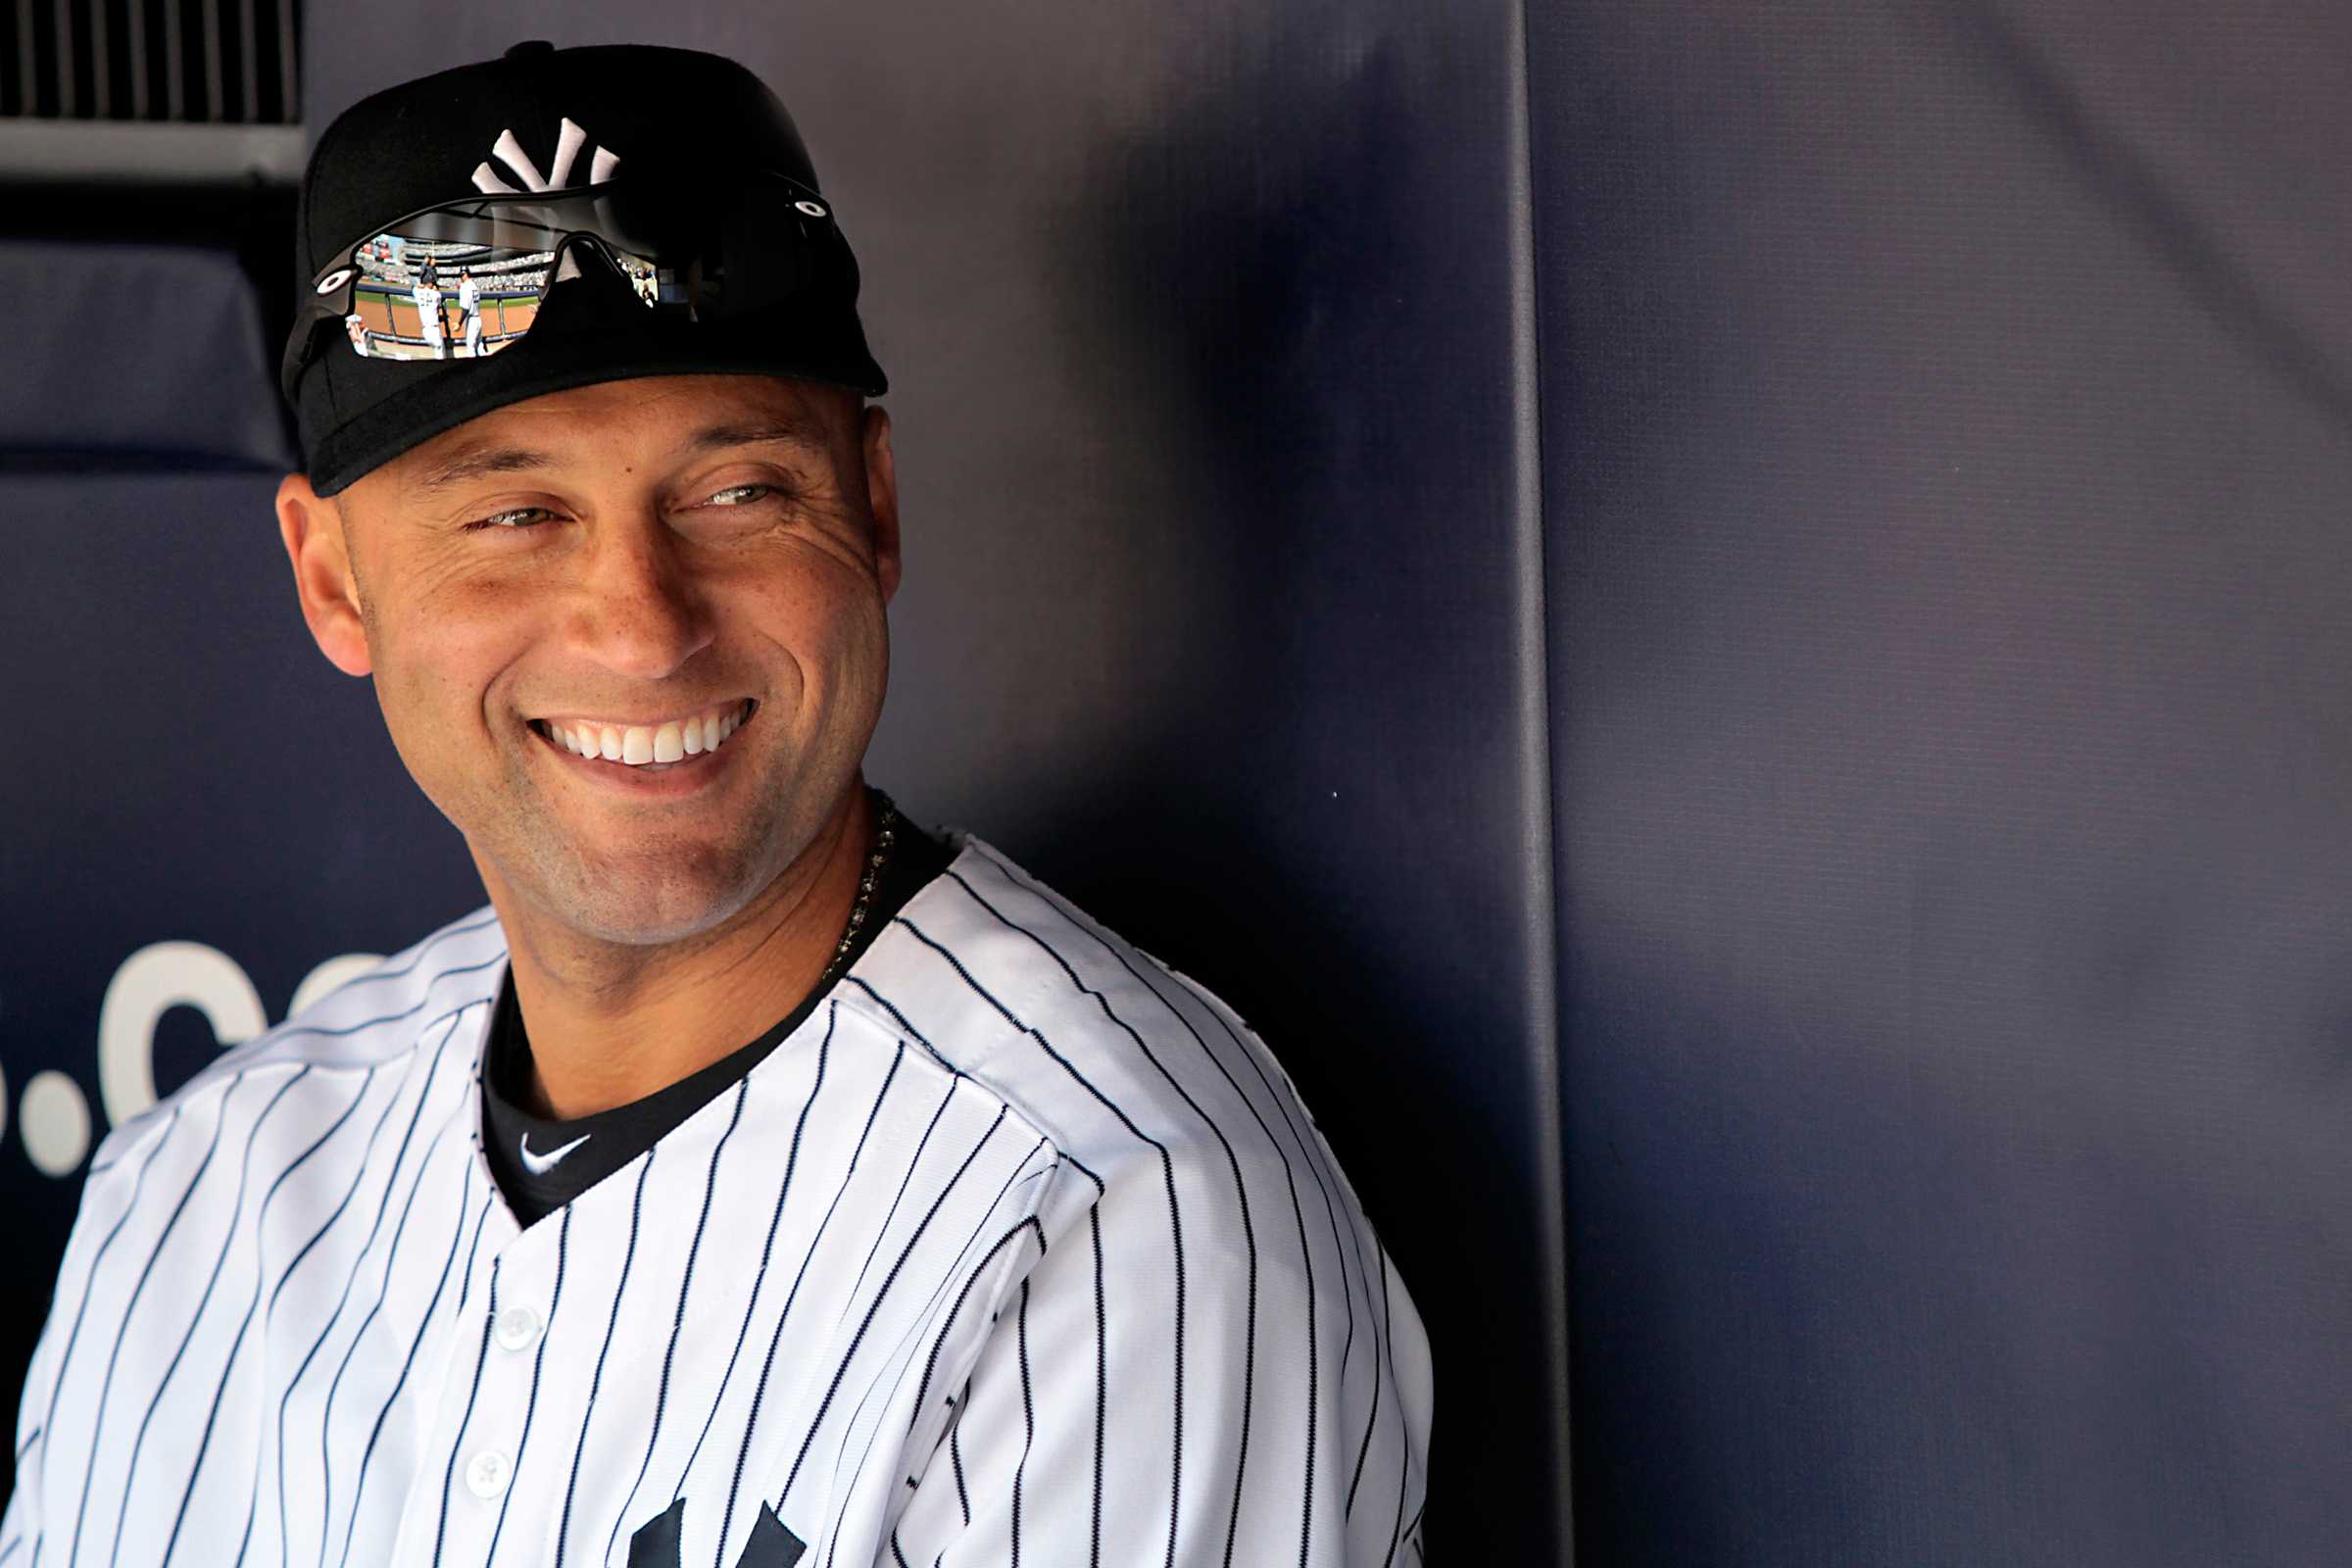 the life and baseball career of derek sanderson jeter Introduction by conventional measures, 2012 was quite a season for derek sanderson jeter the 38-year old shortstop led the majors in hits (216), was fifth-best in the american.